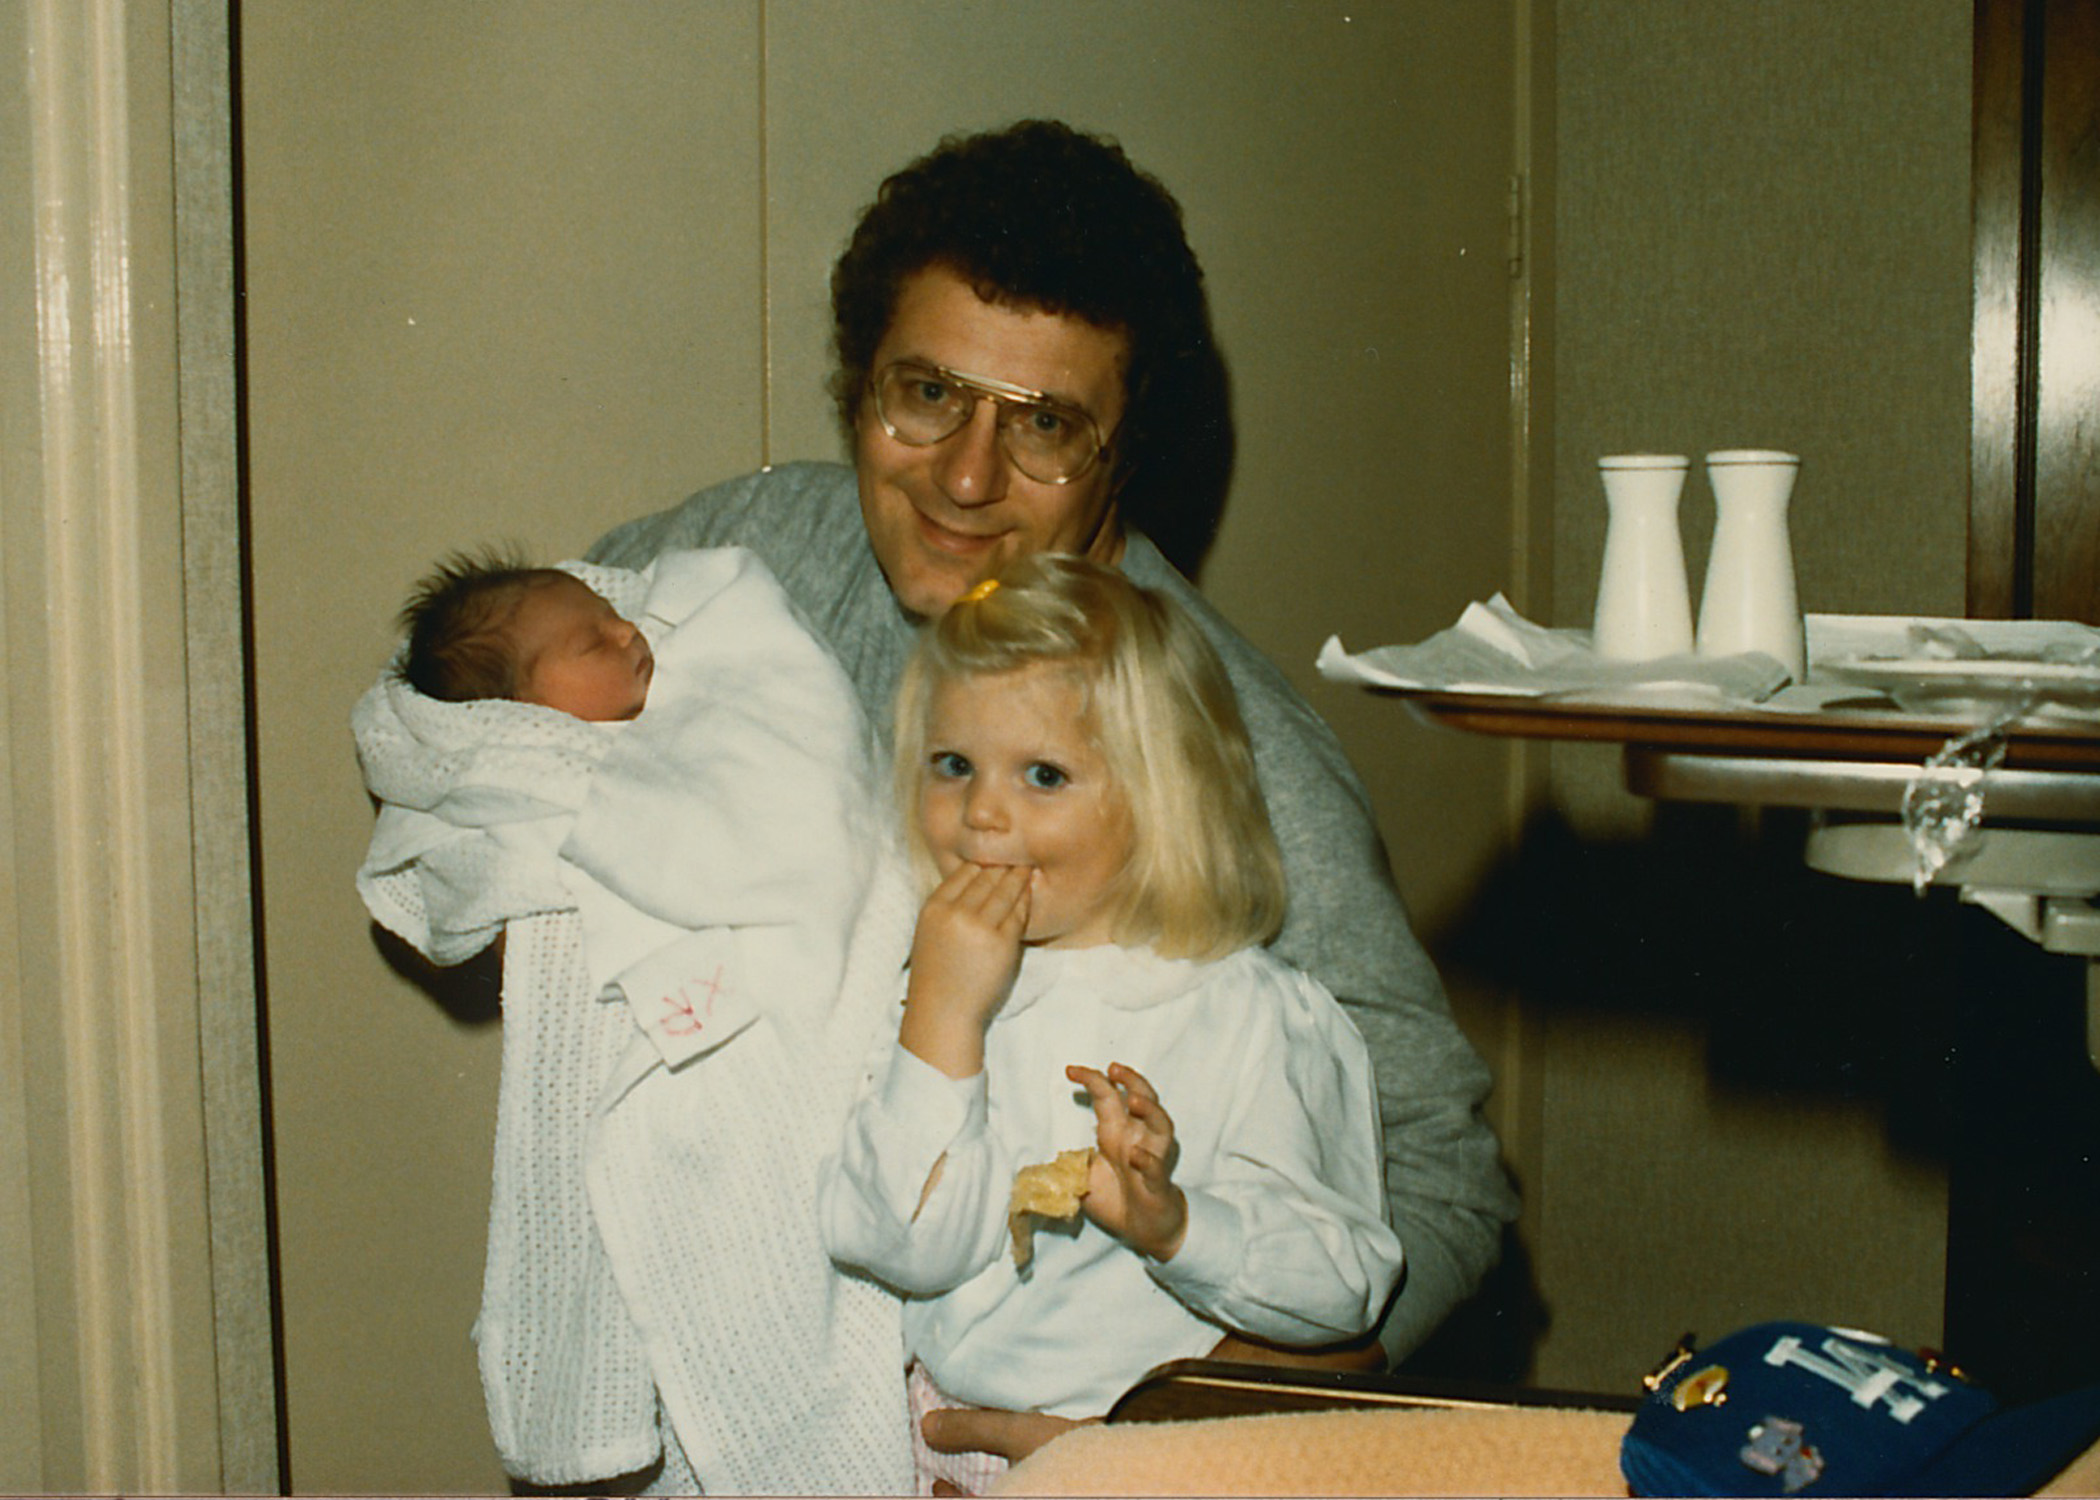 me, my dad and my sister in the hospital on Lauren's birthday. Notice my LA Dodgers hat in the foreground.